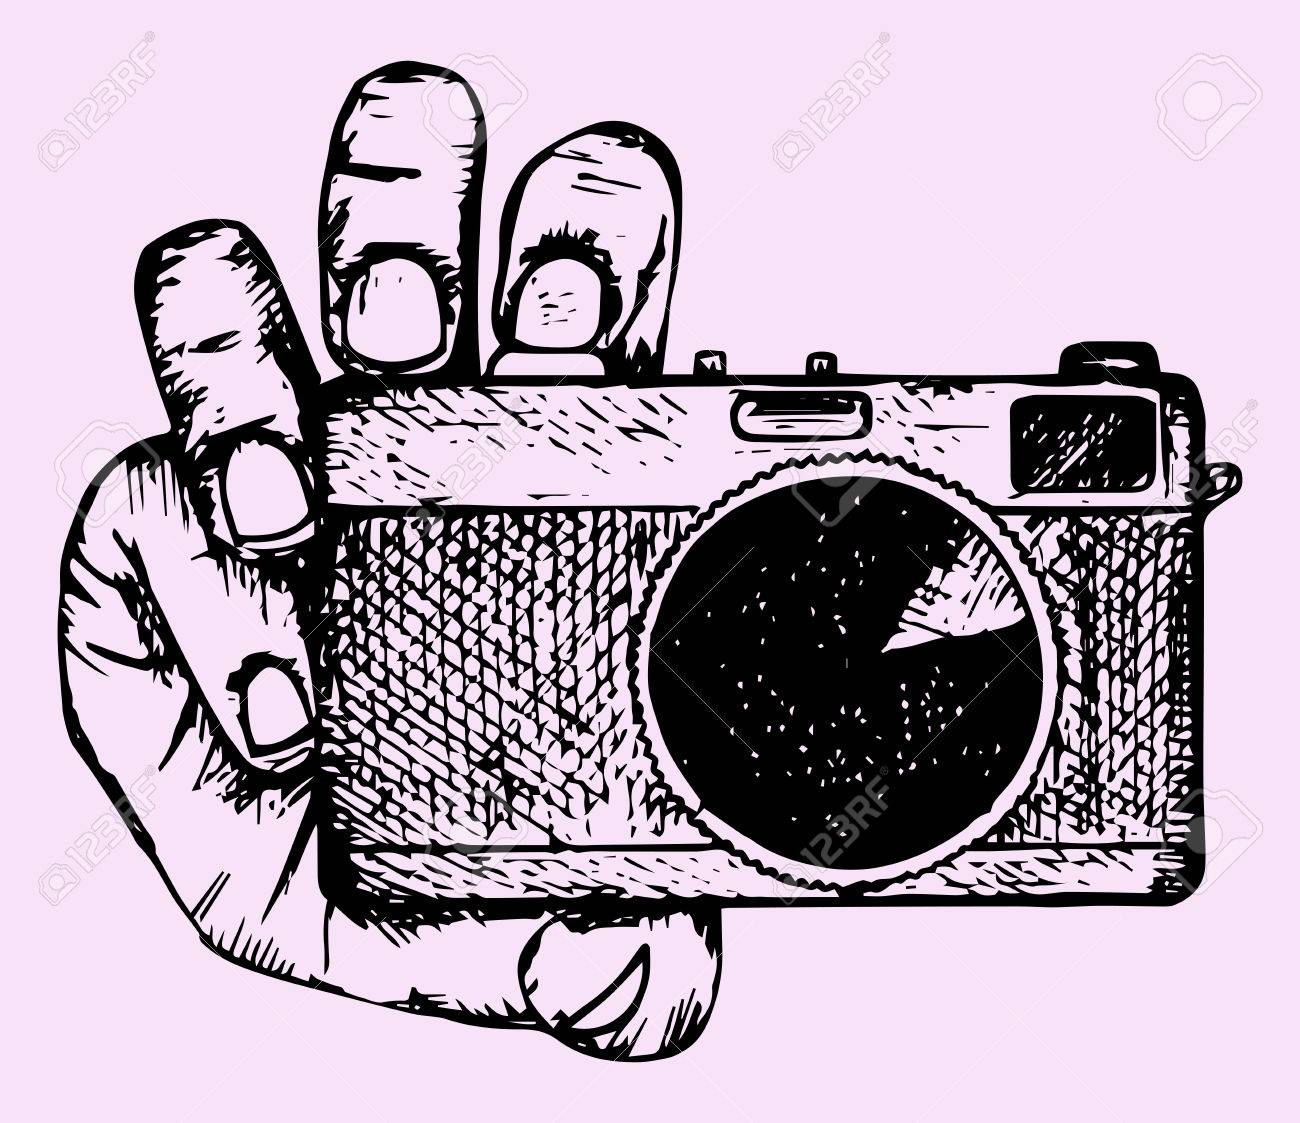 Camera in hand, doodle style, hand drawn - 50128251